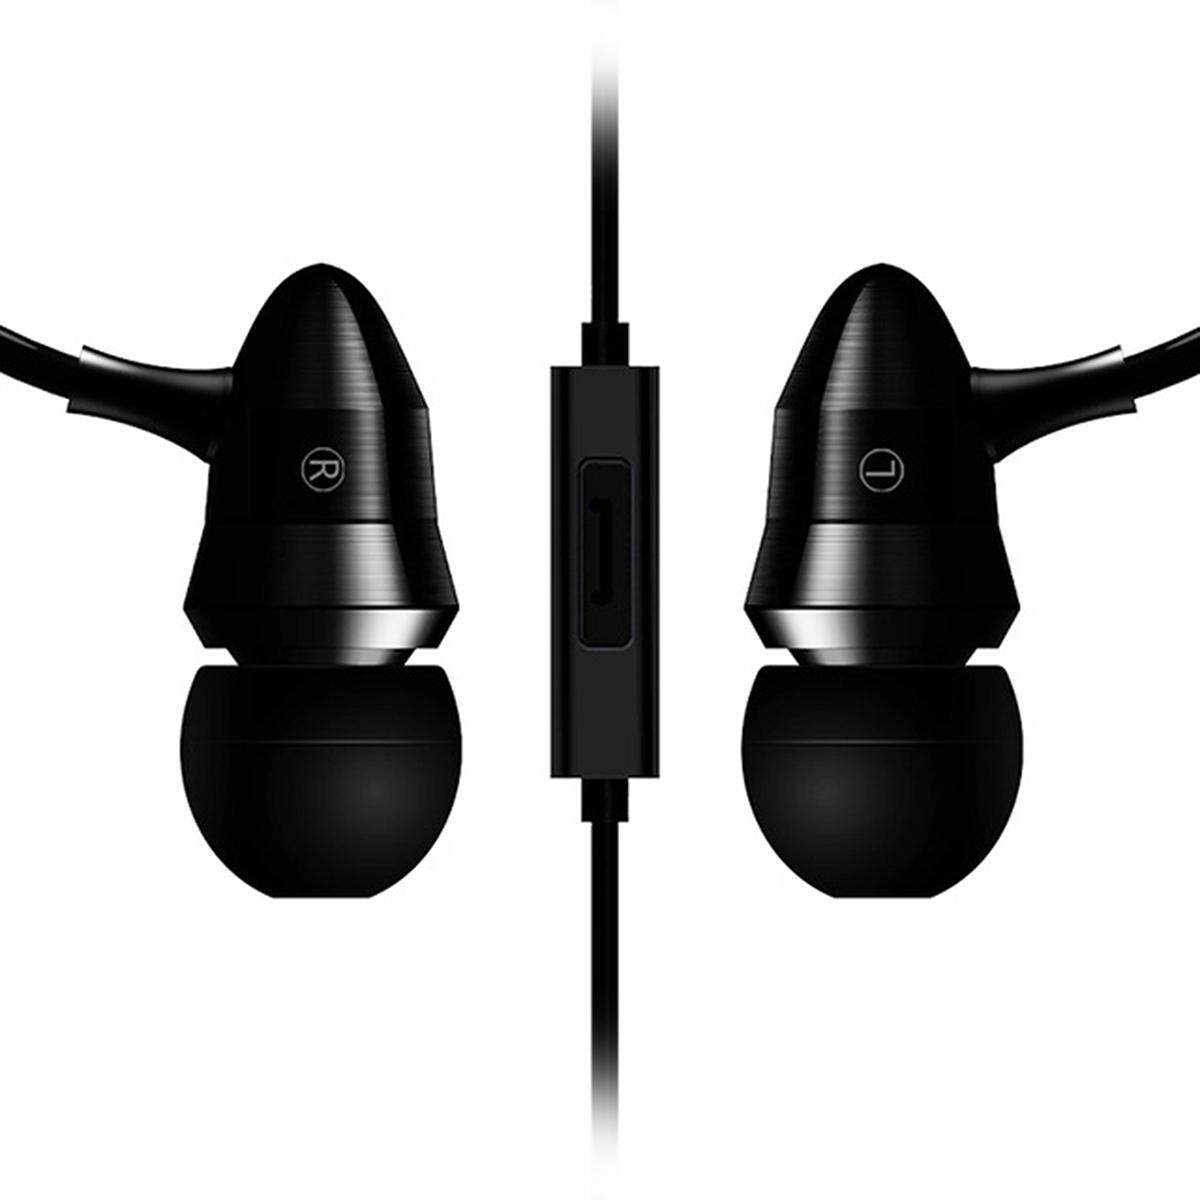 Kelebihan Original Qkz X6 Super Bass Earphones Professional Knowledge Zenith Earphone With Mic S6 Detail Gambar Monitoring Headset Black Microphone Intl Terbaru